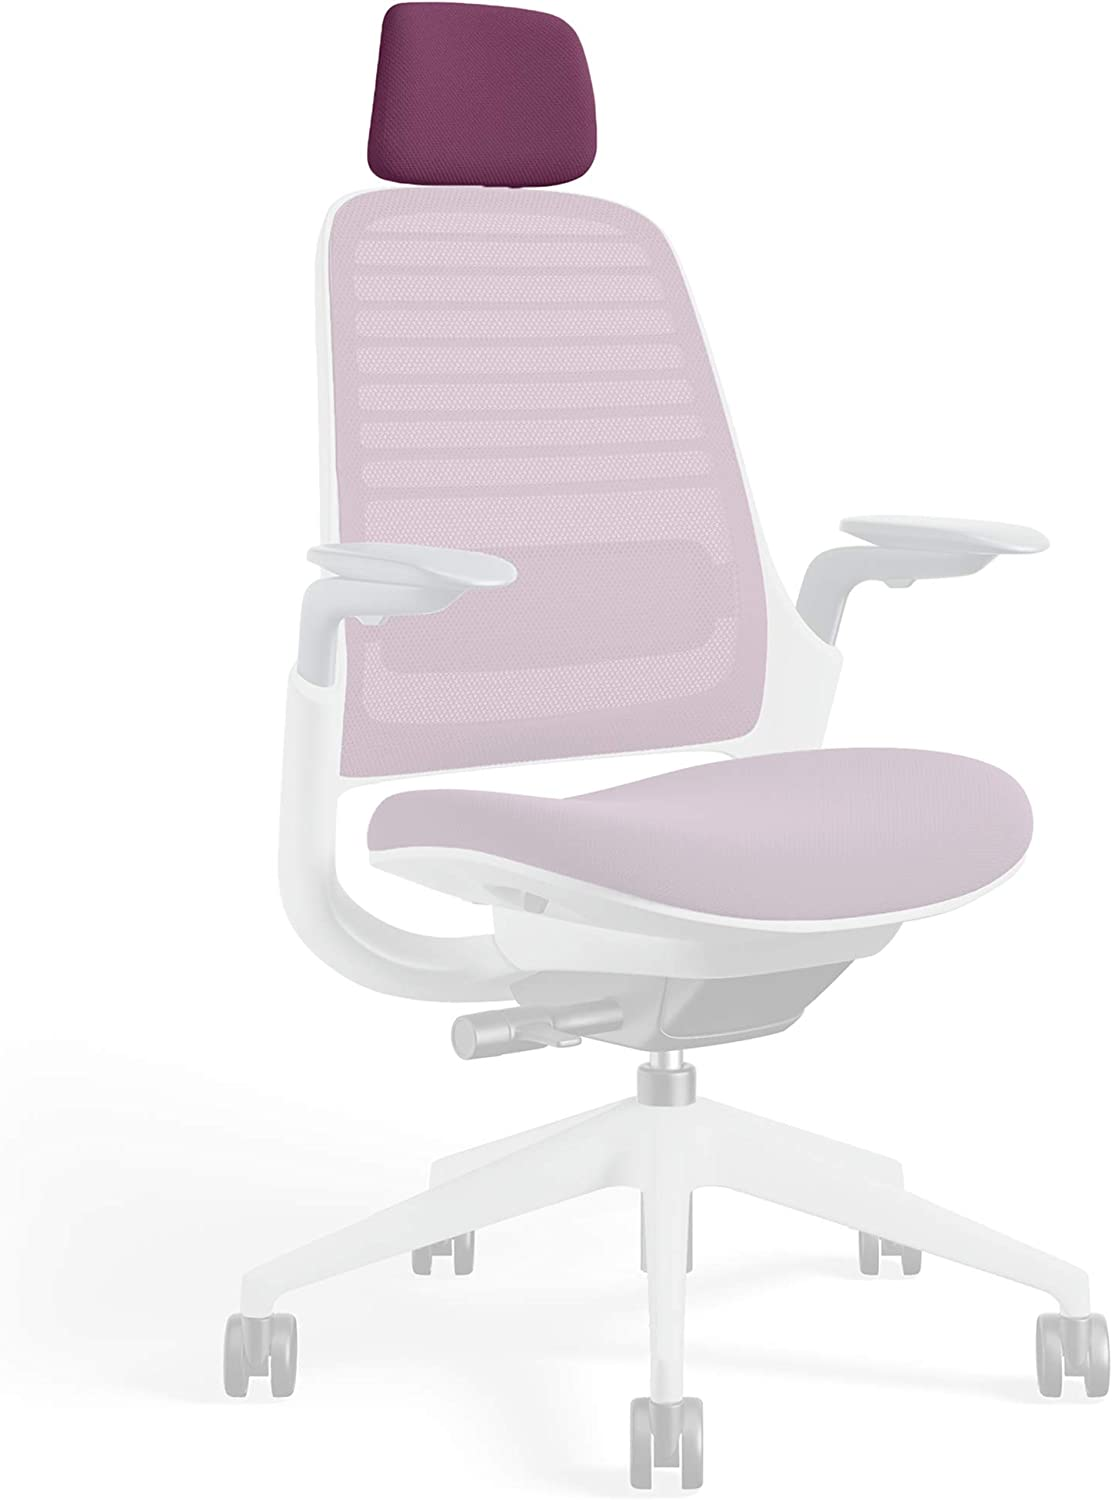 Headrest for Series 1 Task Chair by Steelcase | Seagull Frame, 3D Microknit Fabric | Add-On Part Only (Concord)